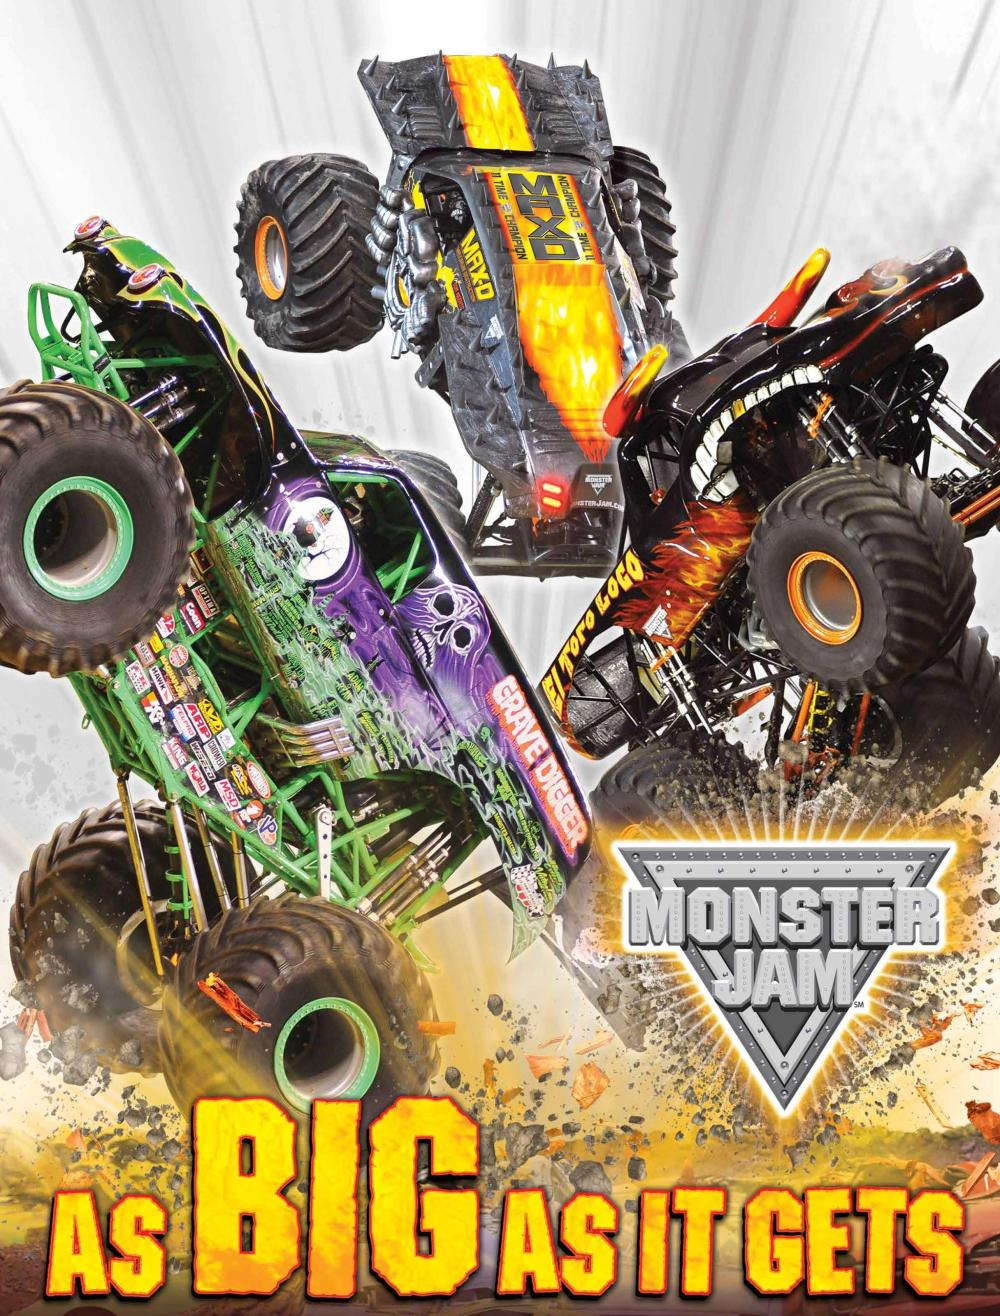 Win Tickets To Disney On Ice Or Monster Jam Tickets Ronnie S Awesome List